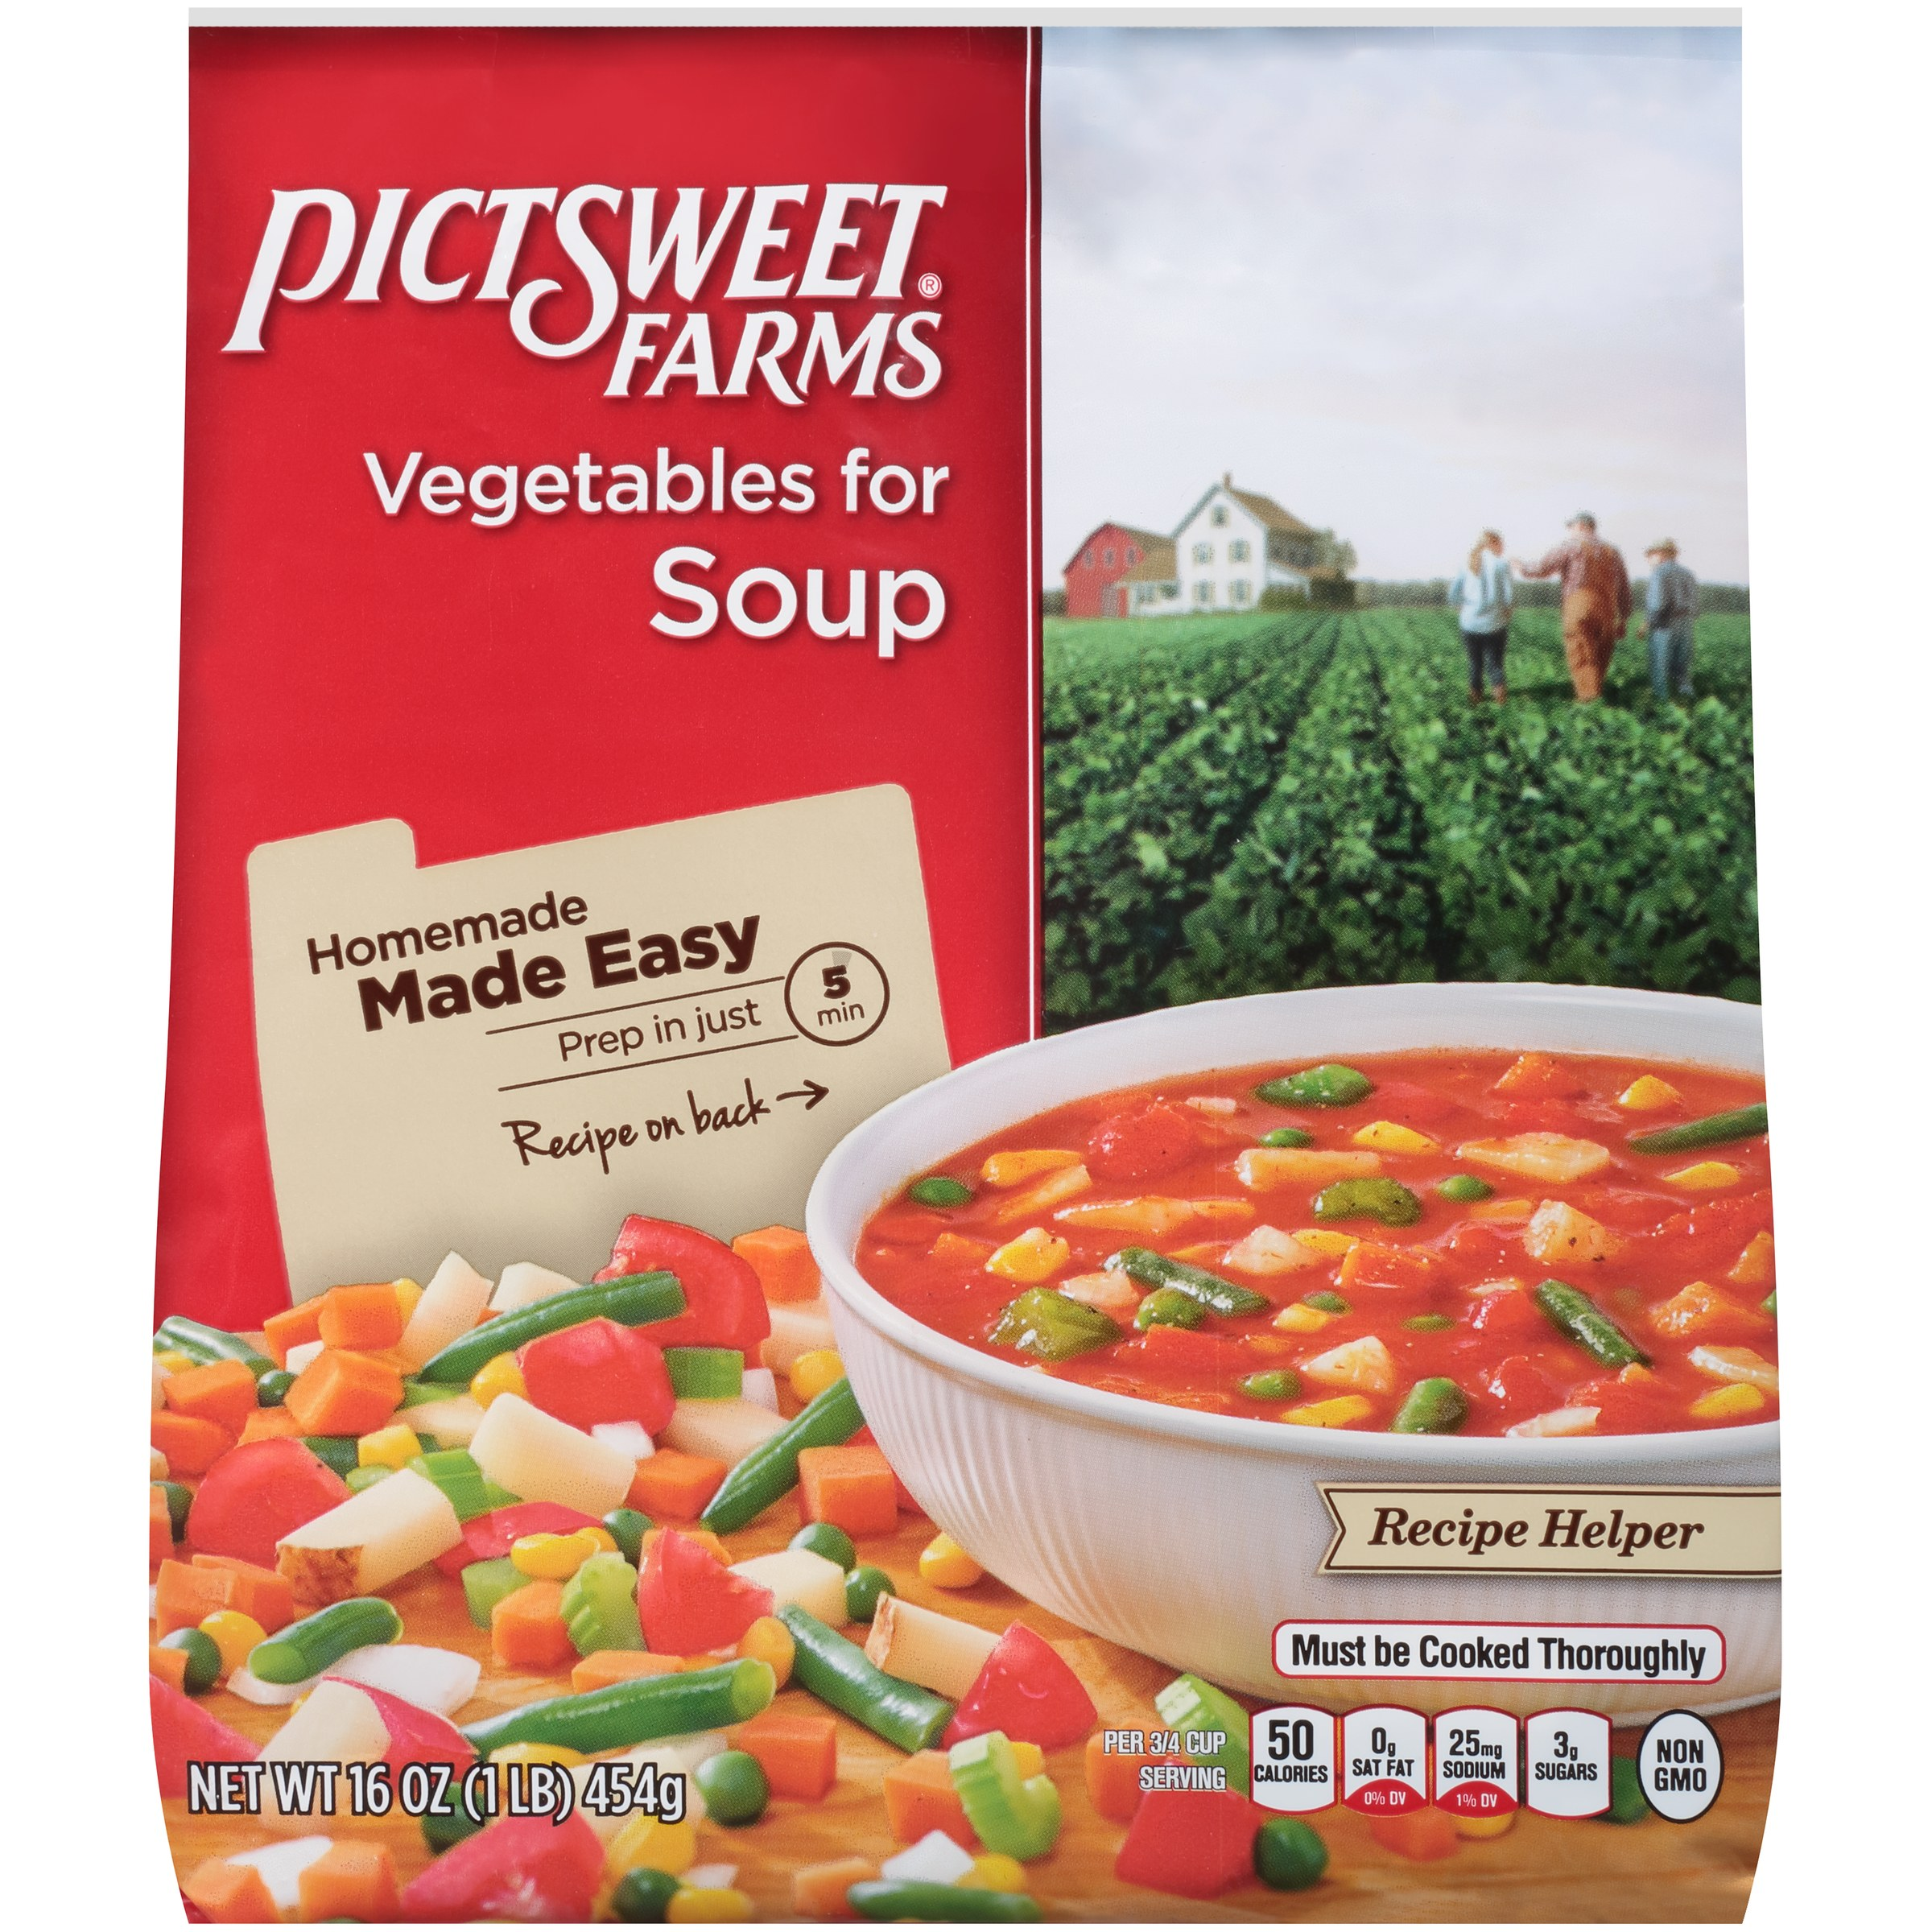 Pictsweet® Farms Vegetables for Soup 16 oz. Stand Up Bag